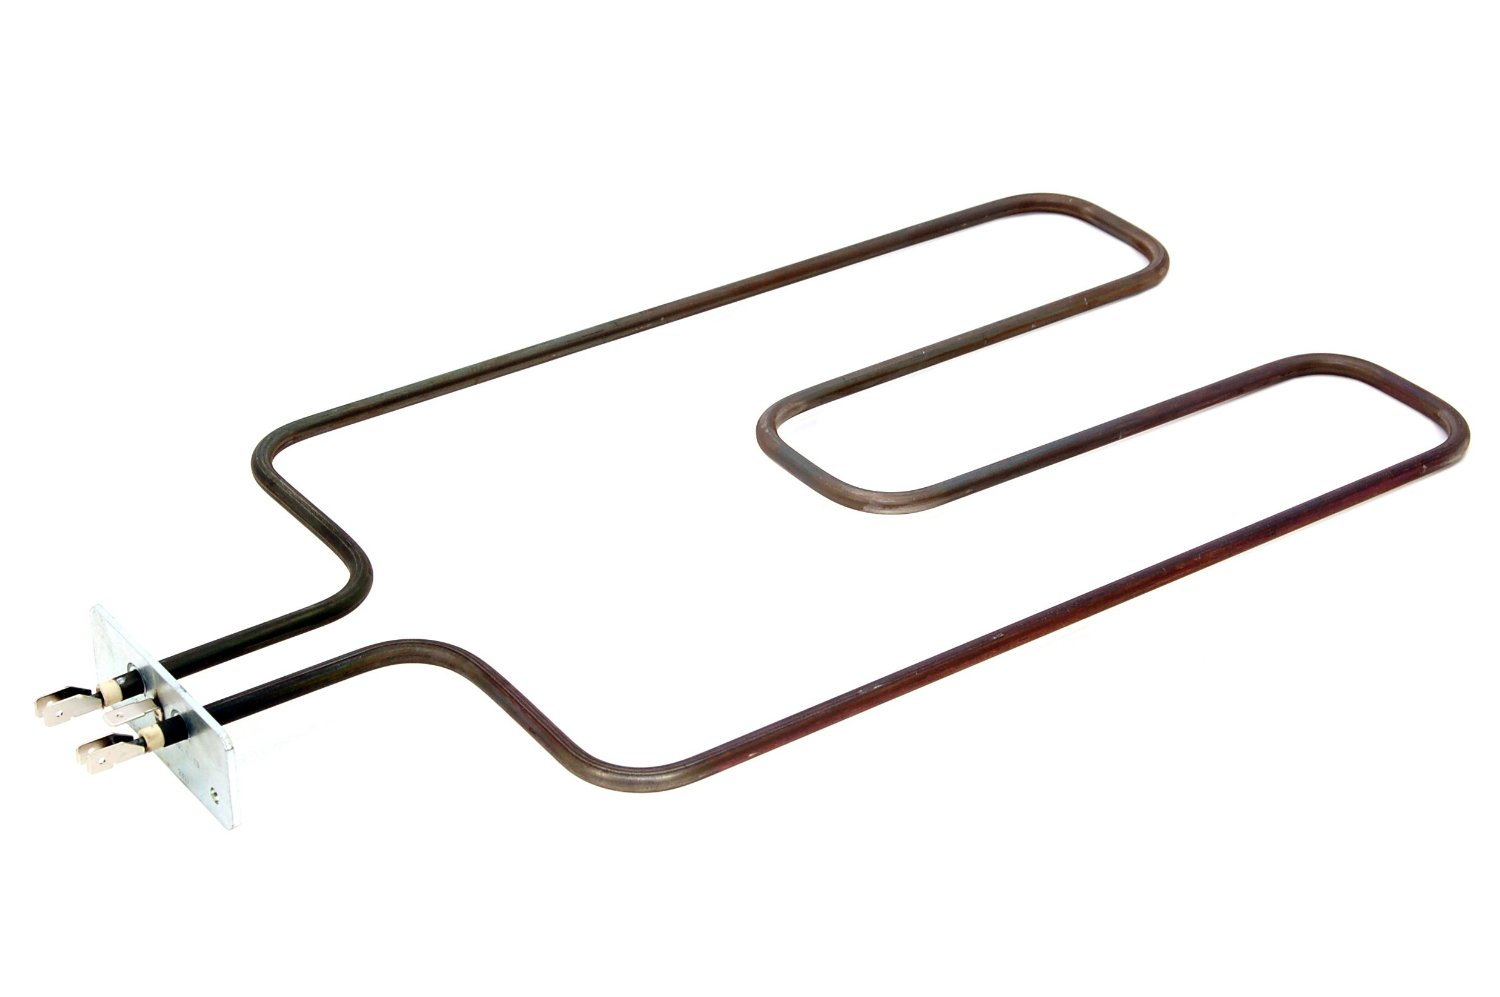 Base Oven Element | 1100 watts heater Width 200 mm Length 390 mm Tags 25 mm | Part No:462920010